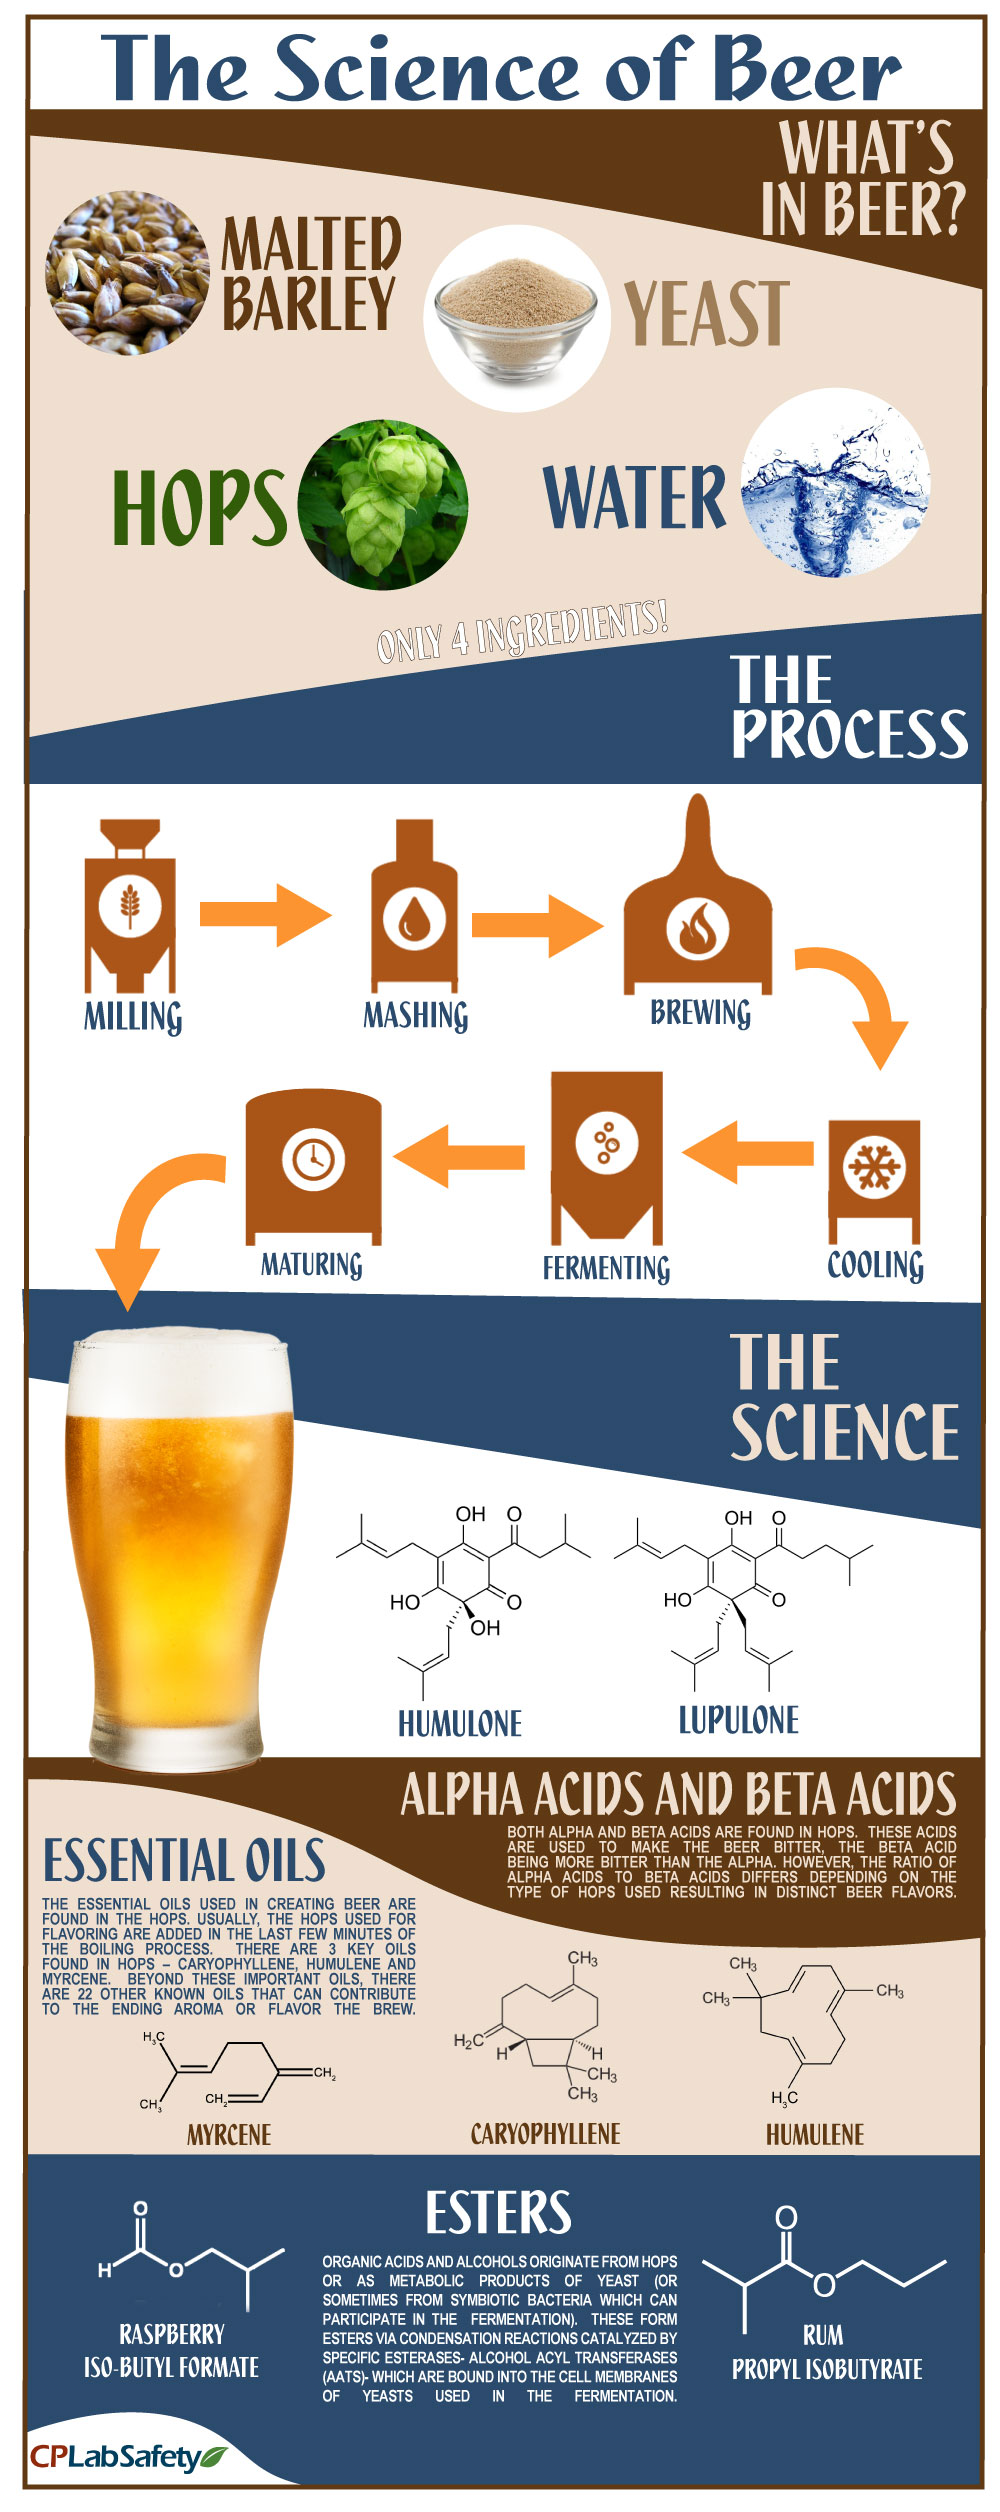 science-of-beer2-fixed.jpg